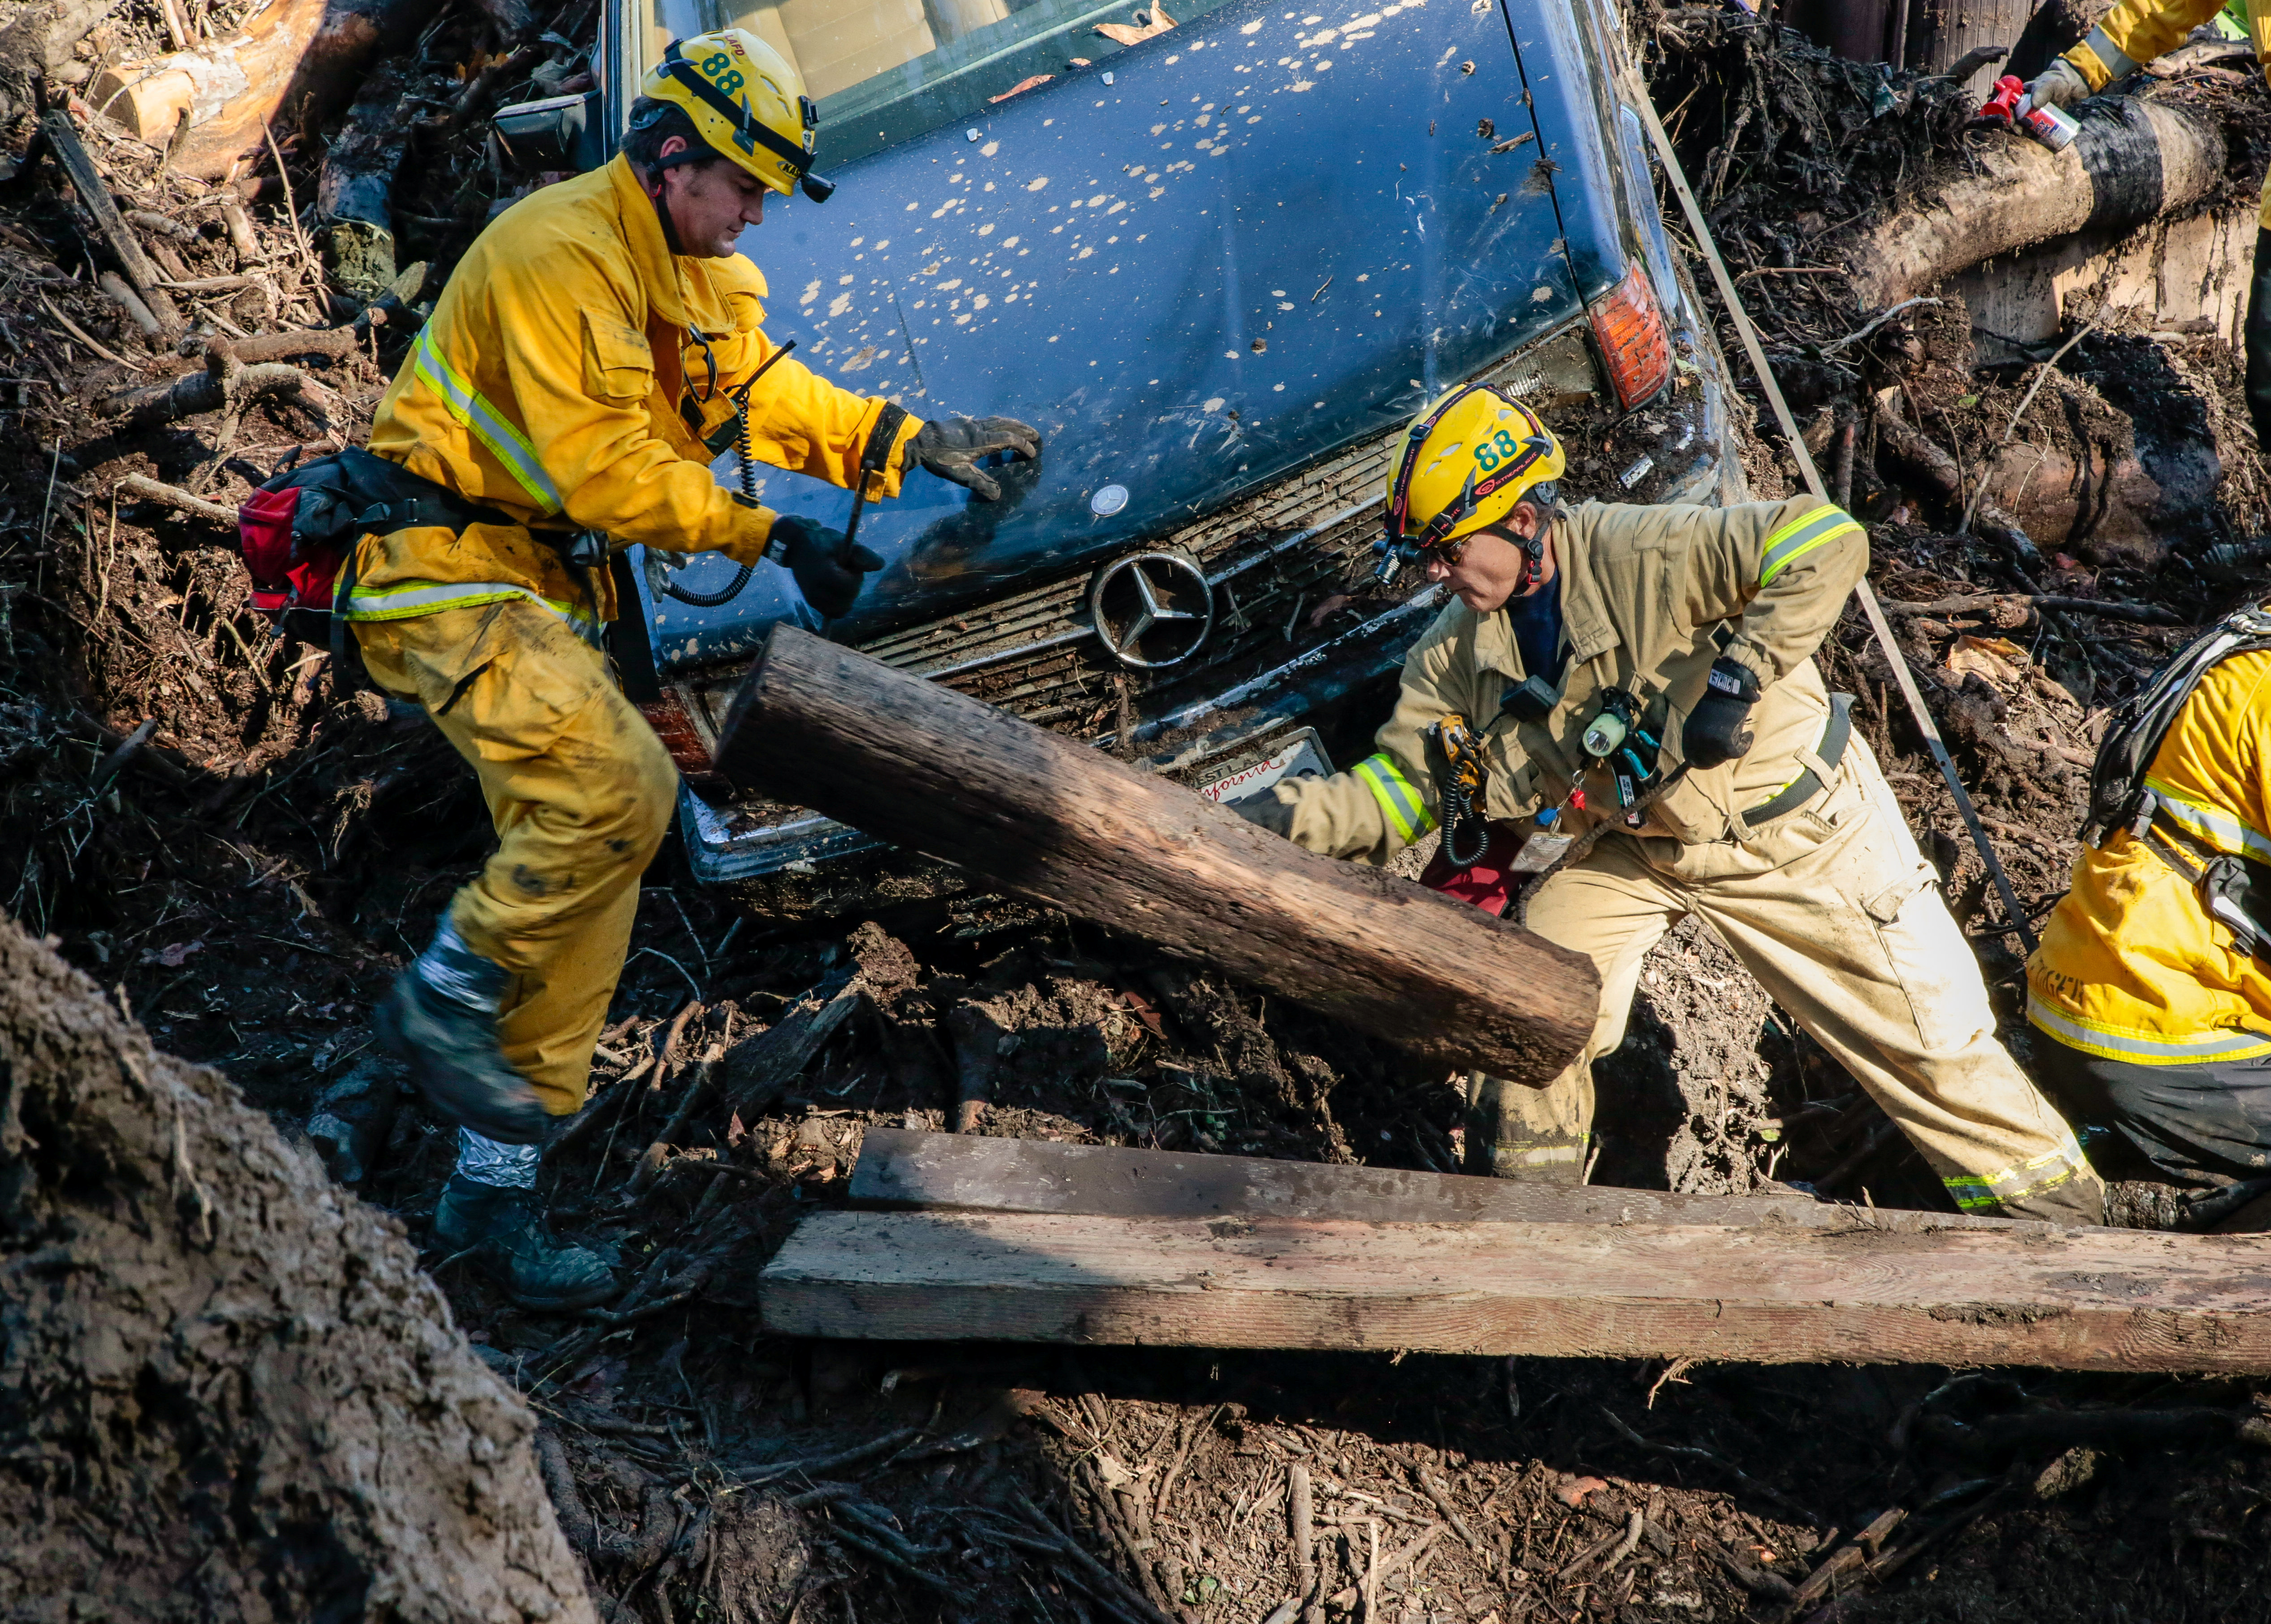 Rescue workers scour through cars for missing persons after a mudslide in Montecito, California, U.S. January 12, 2018. REUTERS/Kyle Grillot